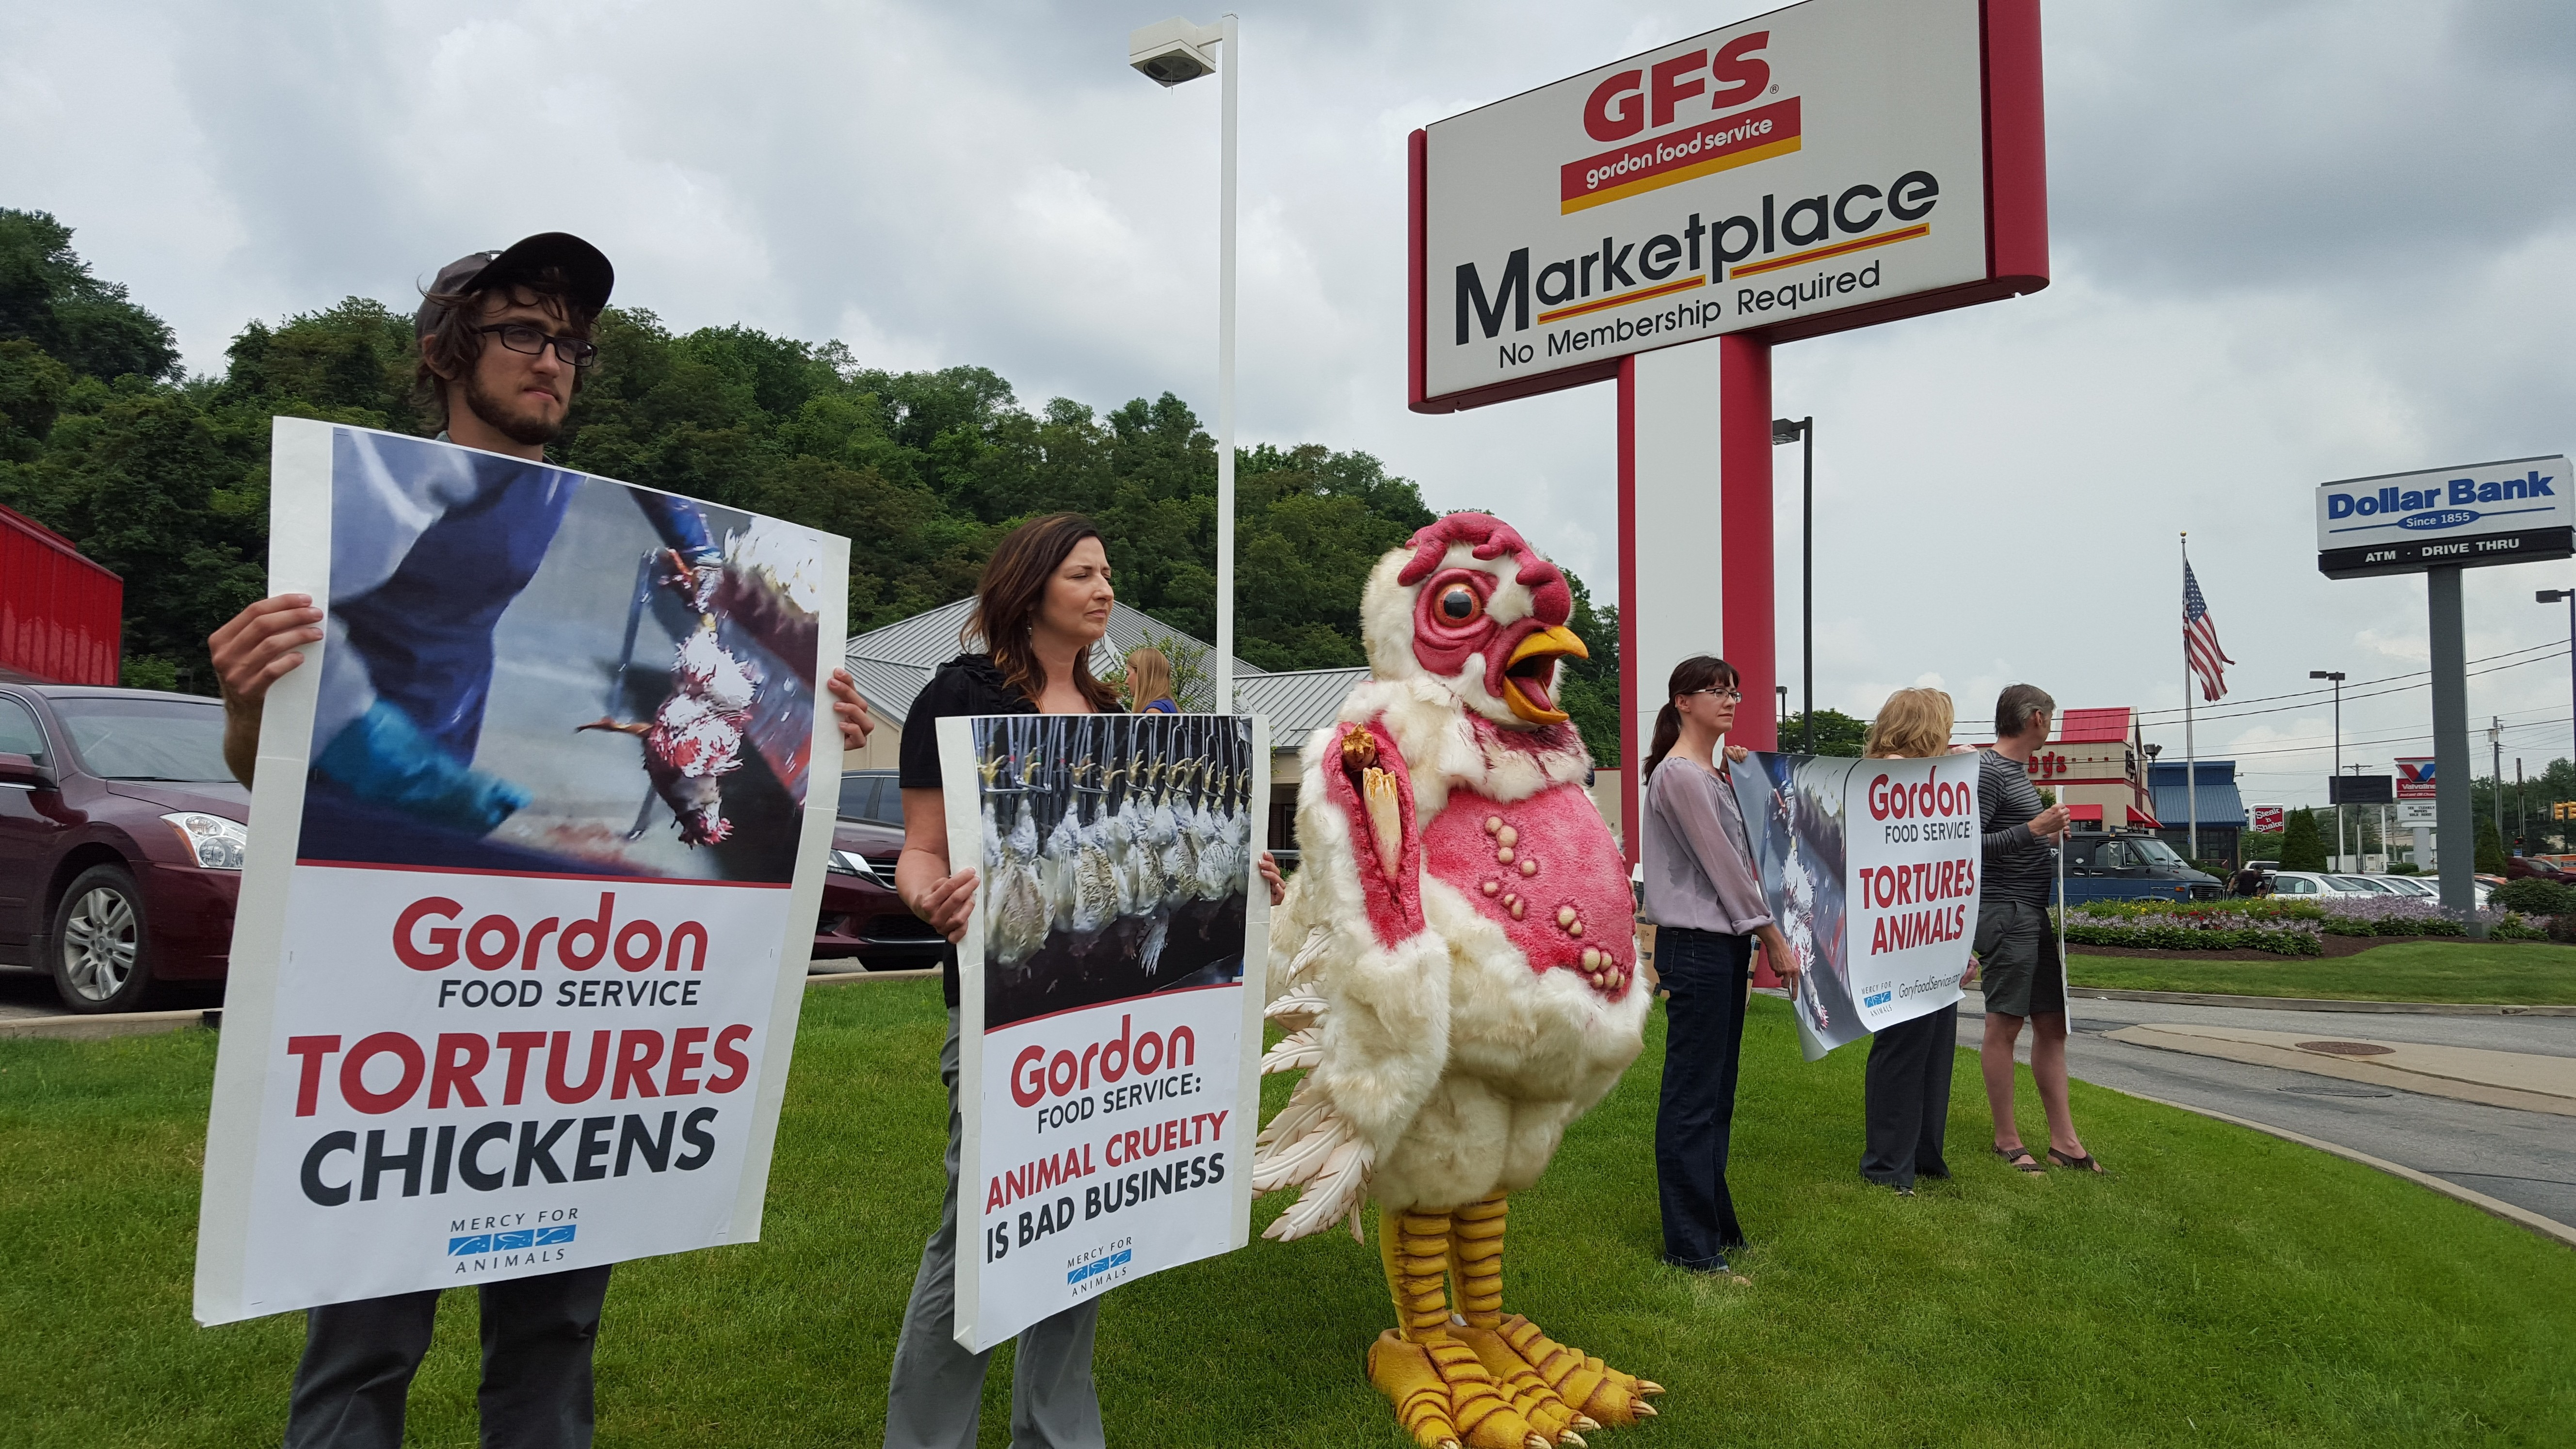 Animal rights group protests local GFS location | Blogh